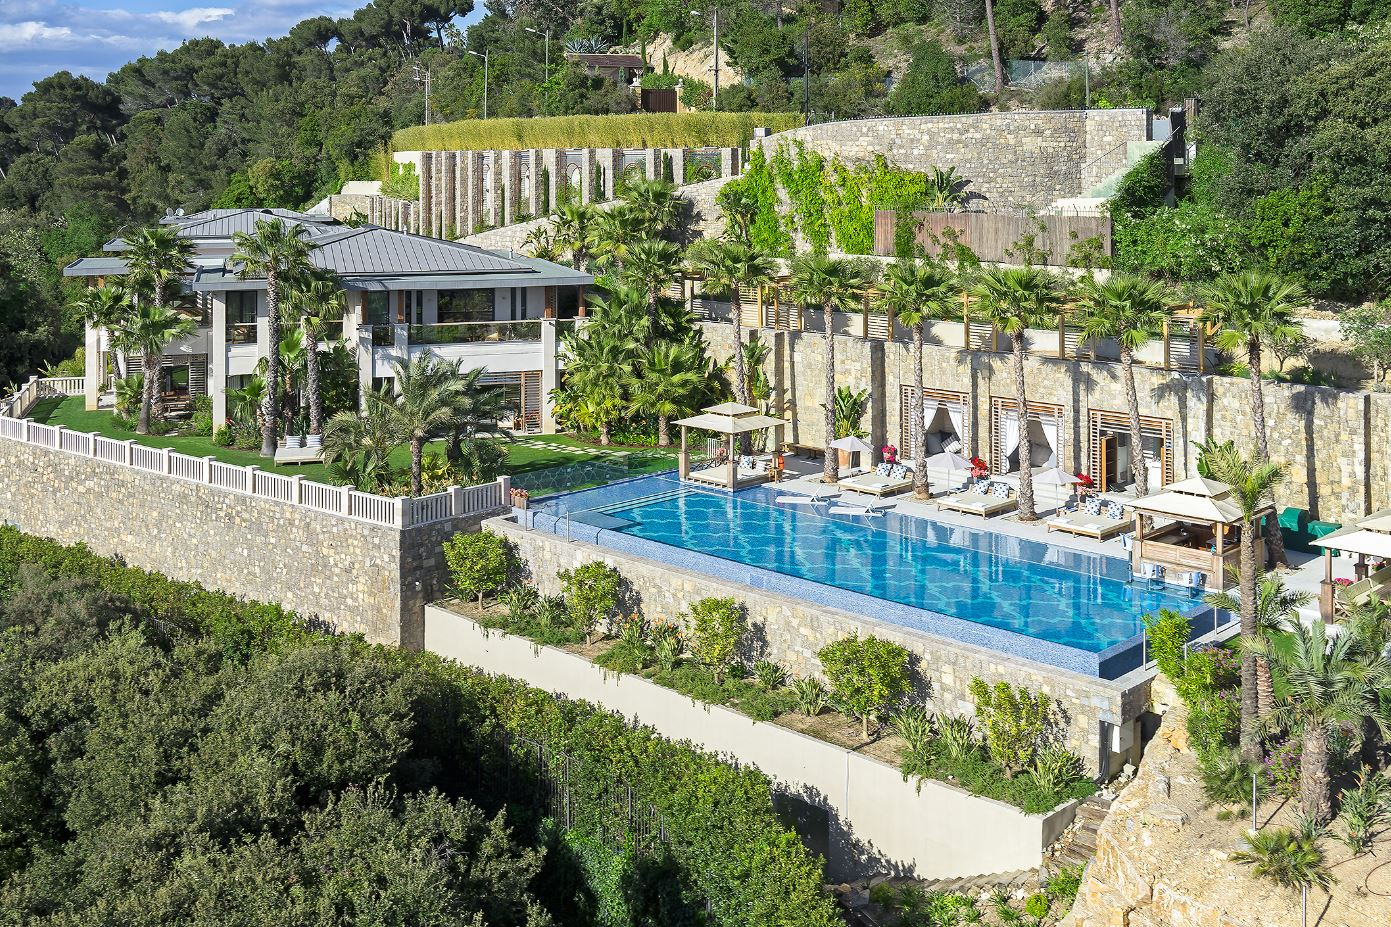 Luxury Villa with Swimming Pool in Mountain